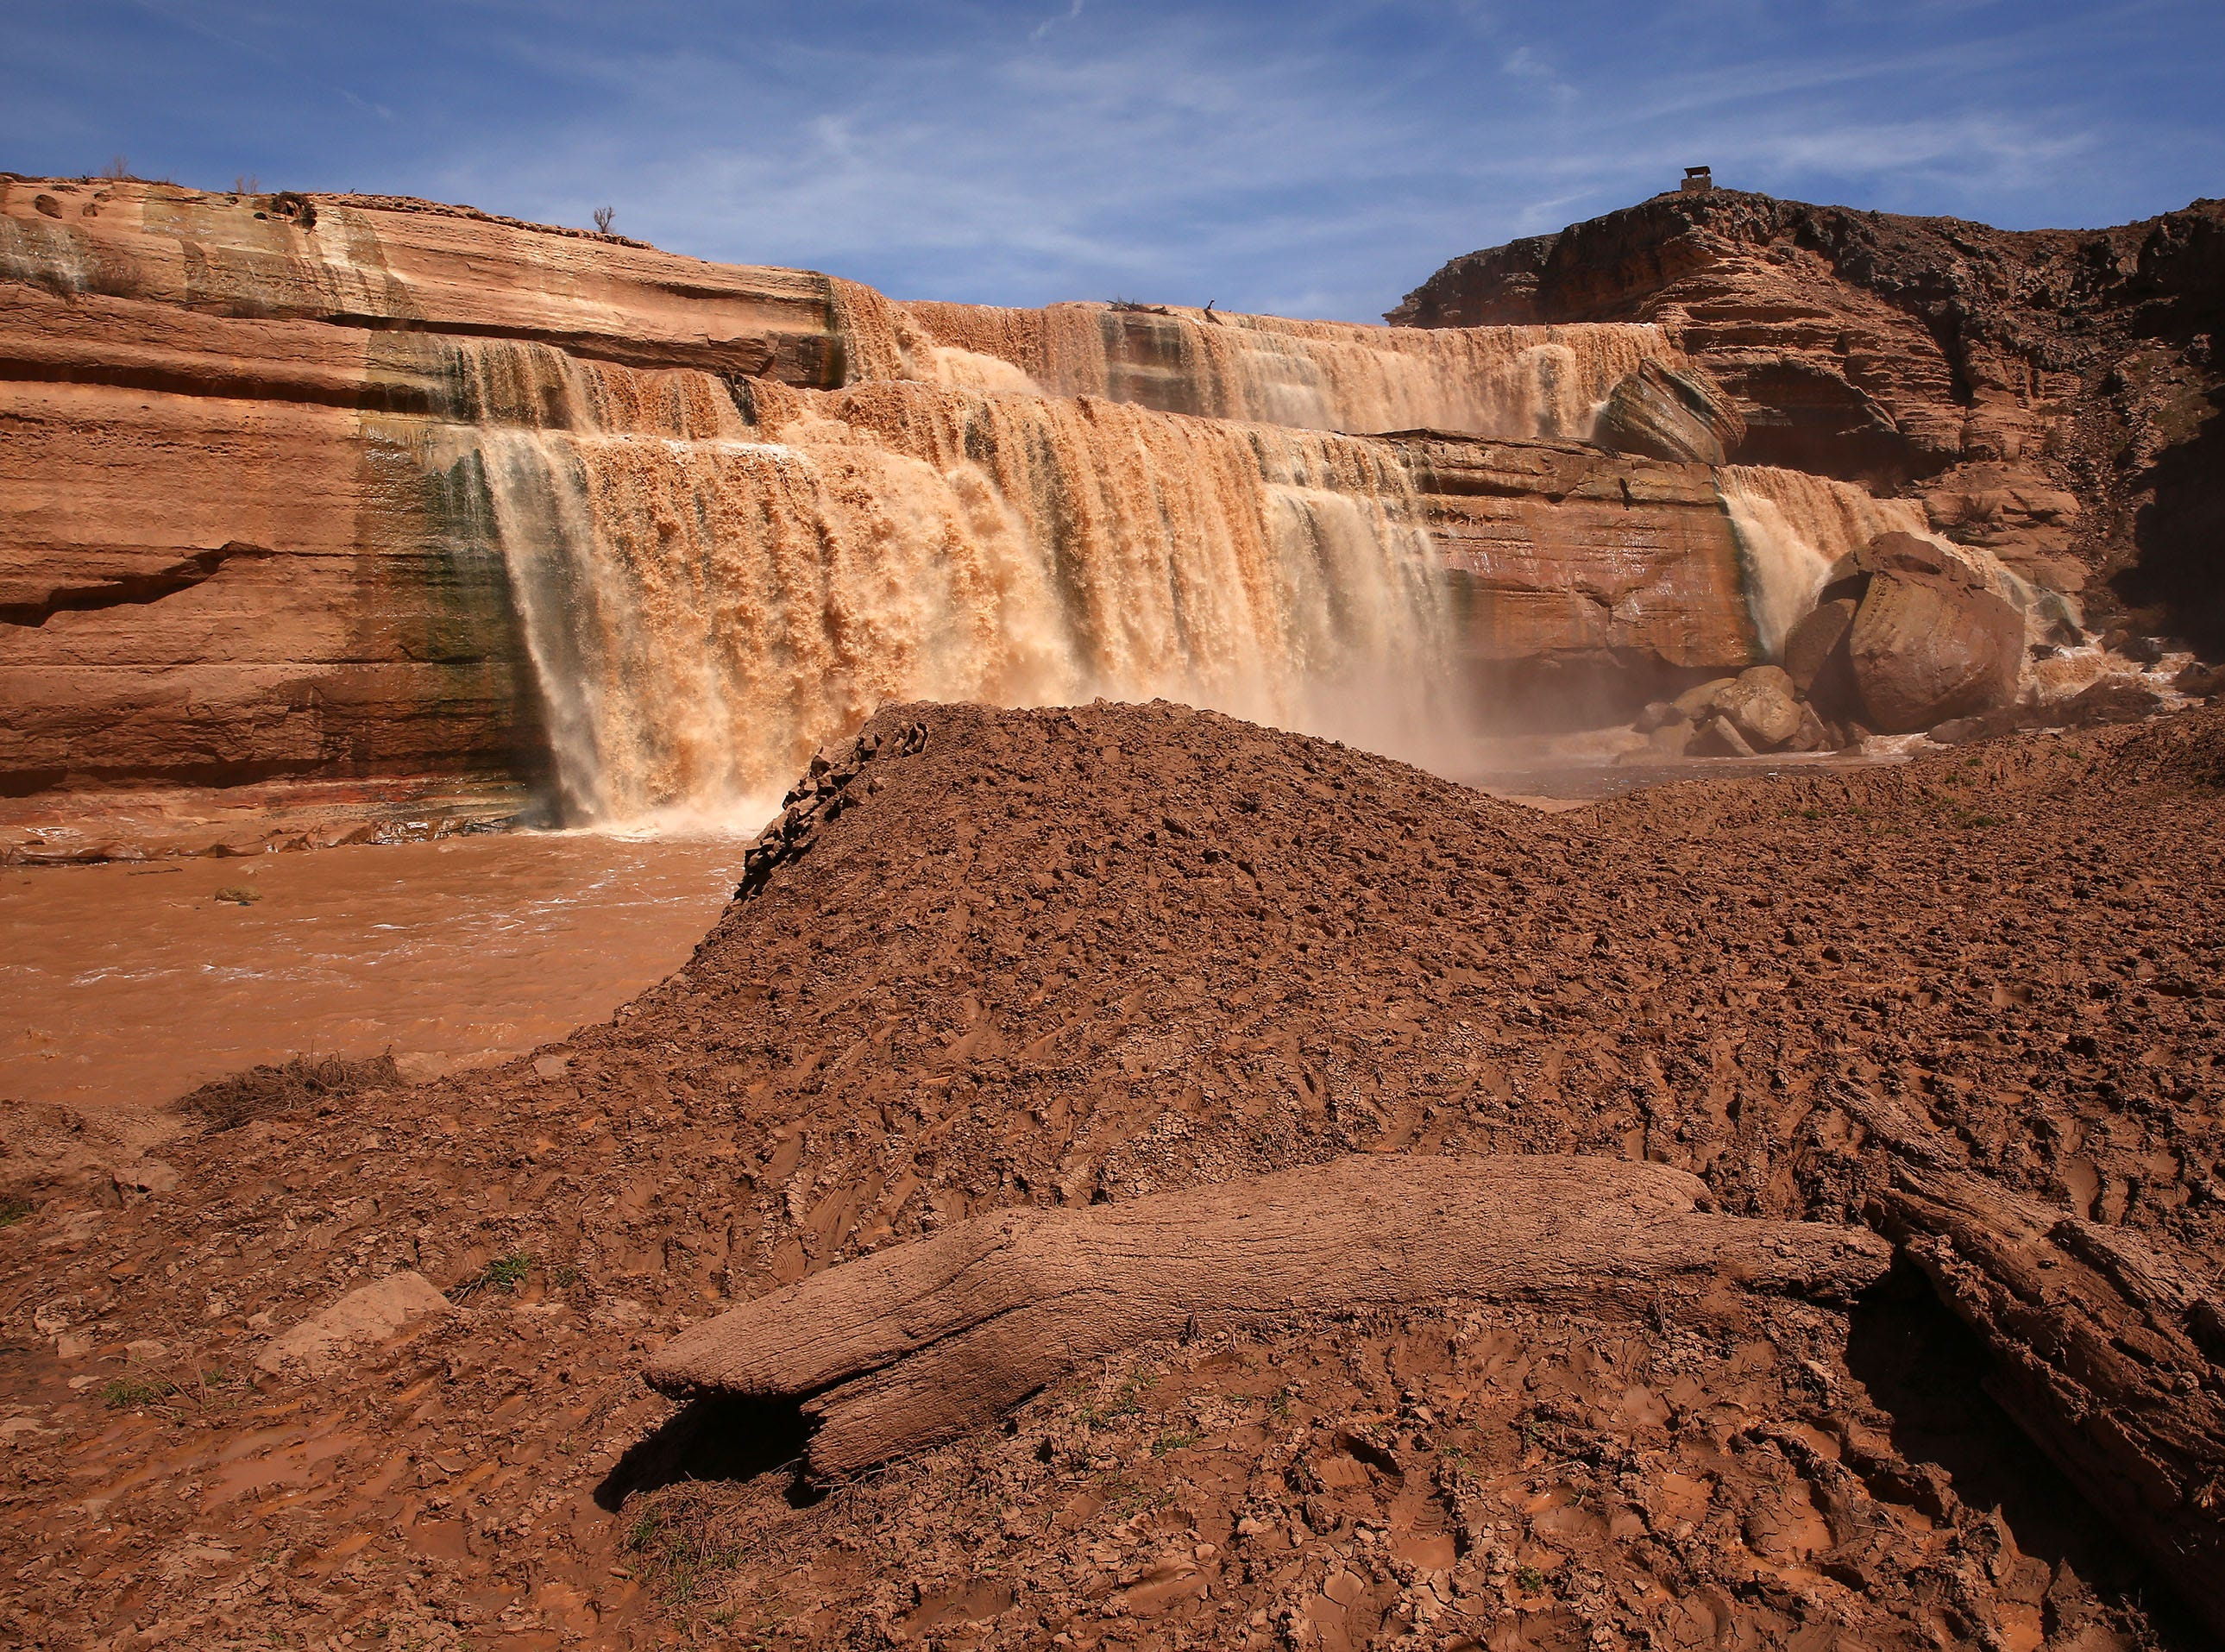 Grand Falls in the Painted Desert on the Navajo Nation on March 28, 2019, near Leupp, Arizona. Melted snow and rain travels down the Little Colorado River to the 185-foot fall a.k.a. Chocolate Falls. Grand Falls is 18 feet taller than Niagara Falls.